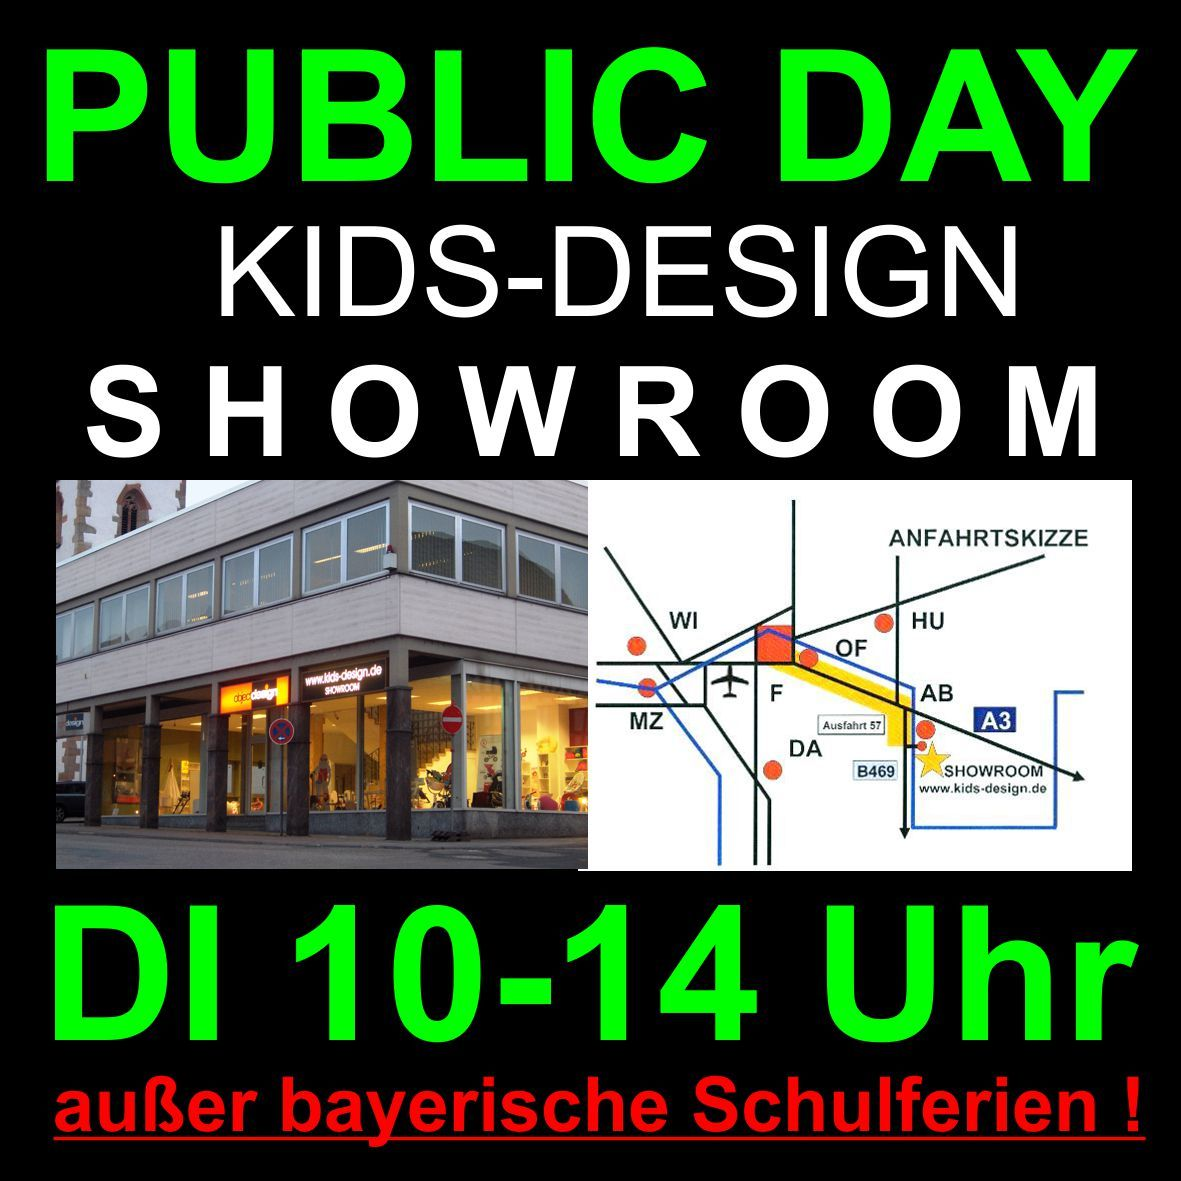 Kreative Kinderbetten Www.kids-design.de - Hotline 06028 992255